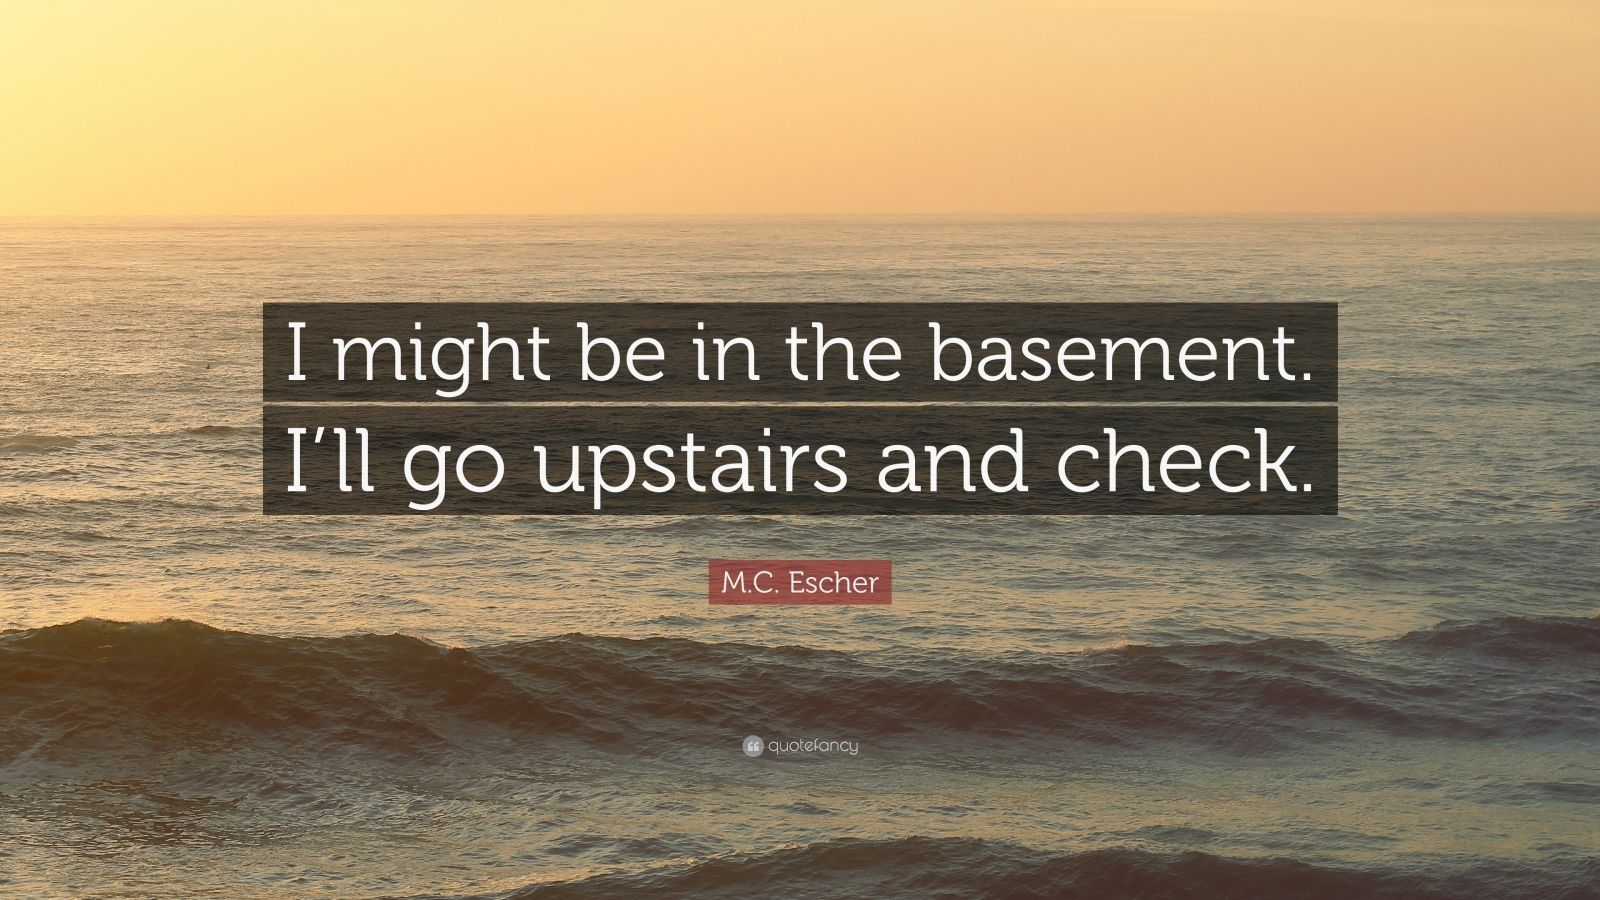 """M.C. Escher Quote: """"I might be in the basement. I'll go upstairs and check."""""""